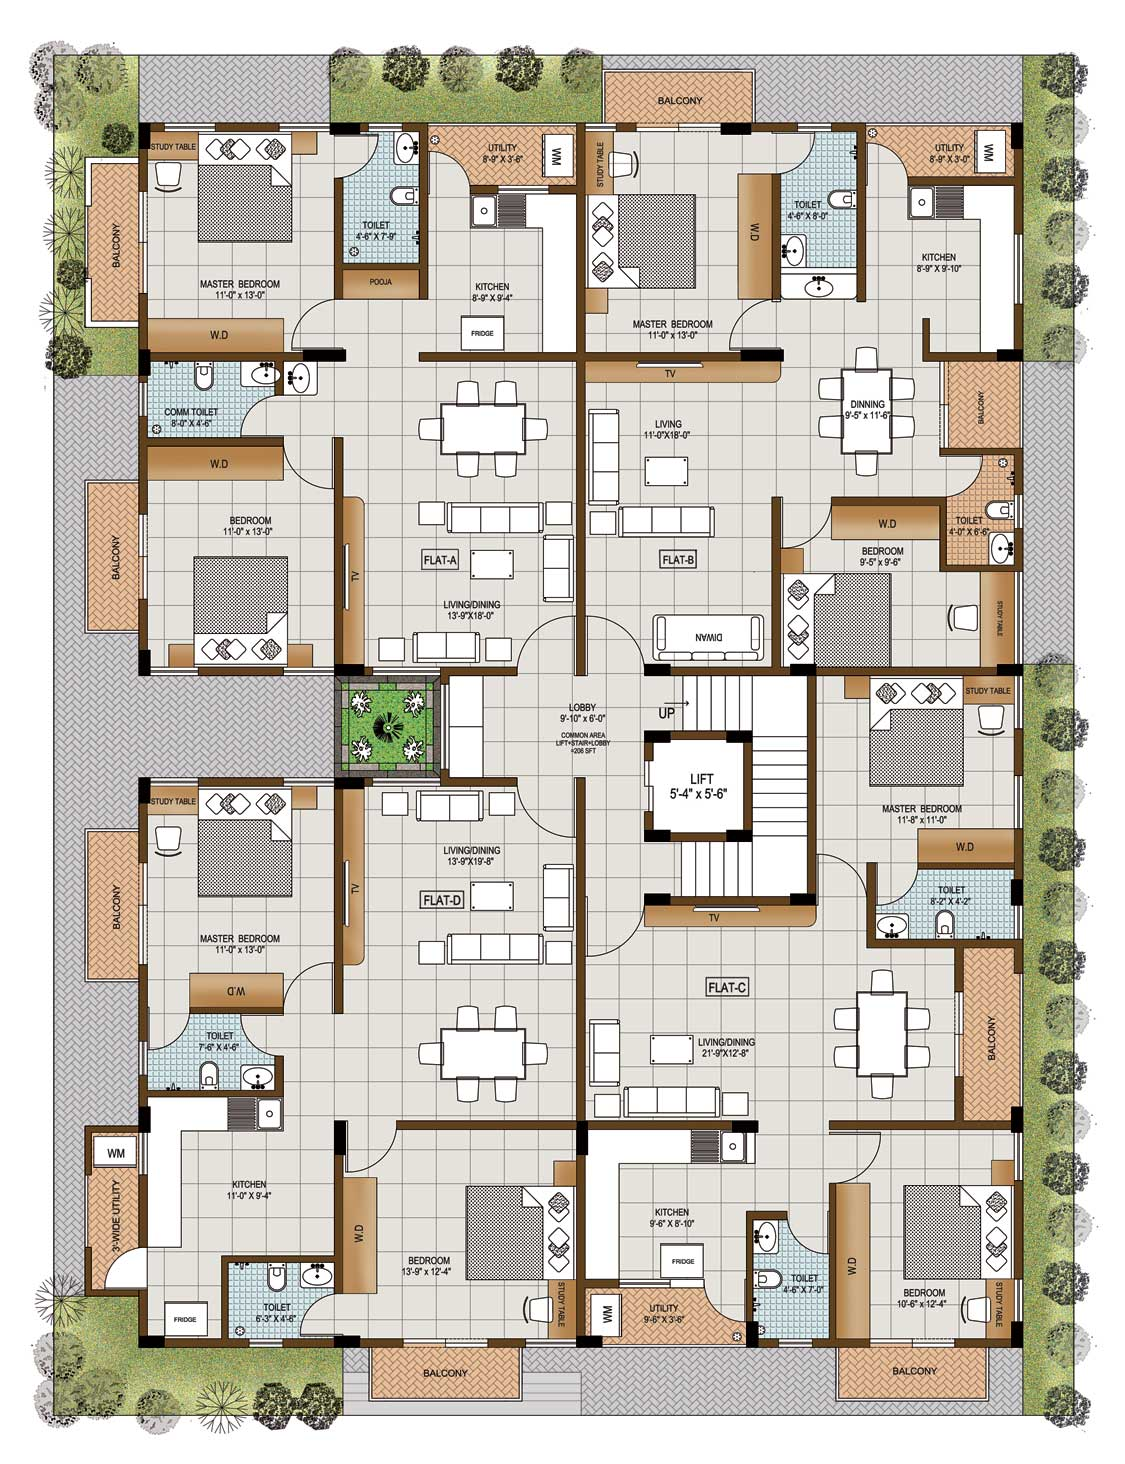 Ssv projects builders in bangalore ssv emerald luxury for Floor plan project